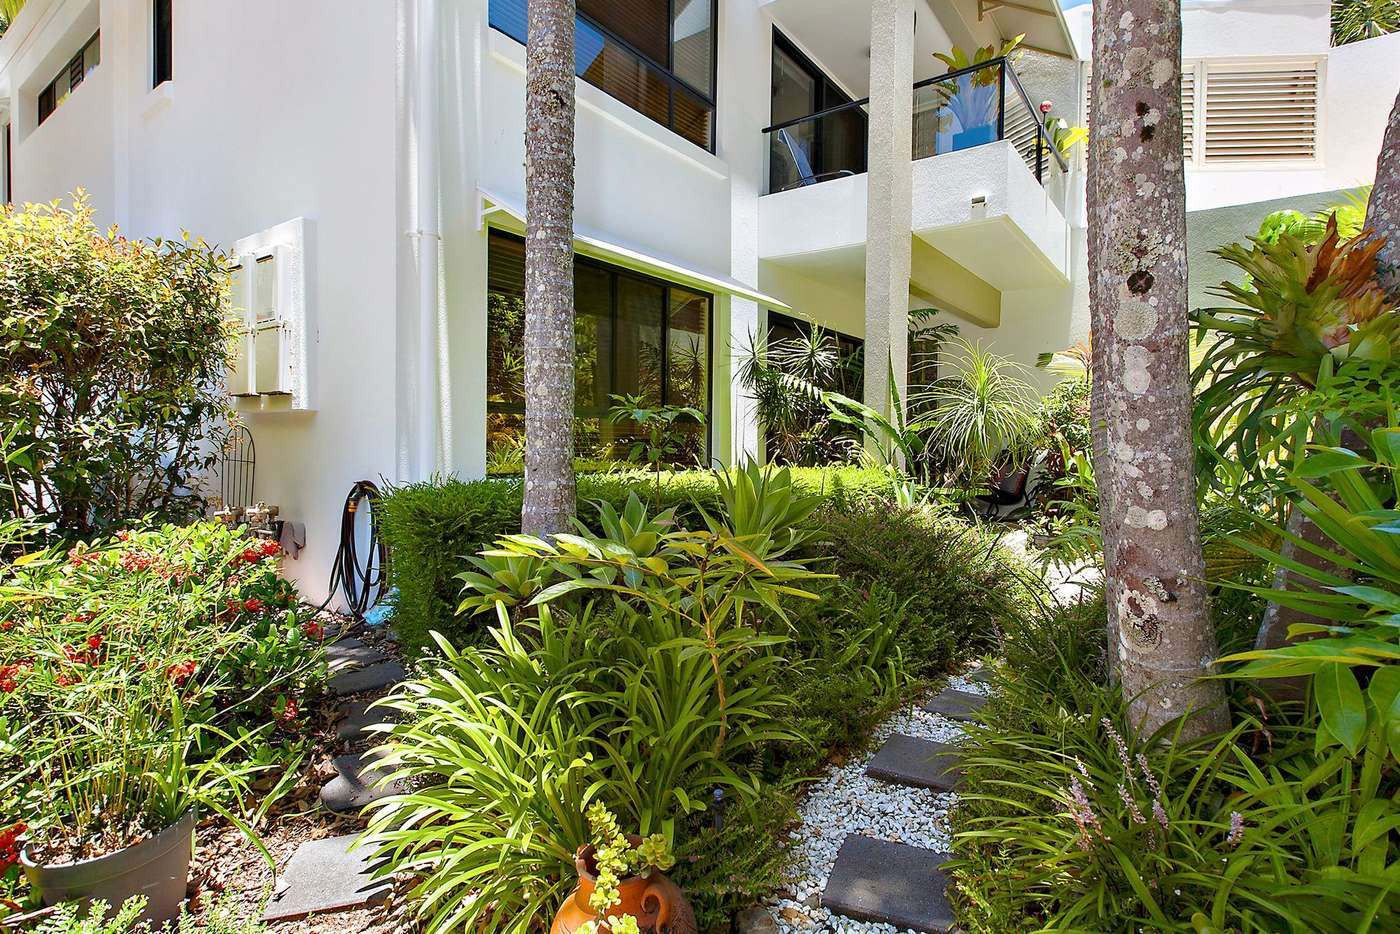 Main view of Homely unit listing, 832/100 Resort Drive, Noosa Heads QLD 4567